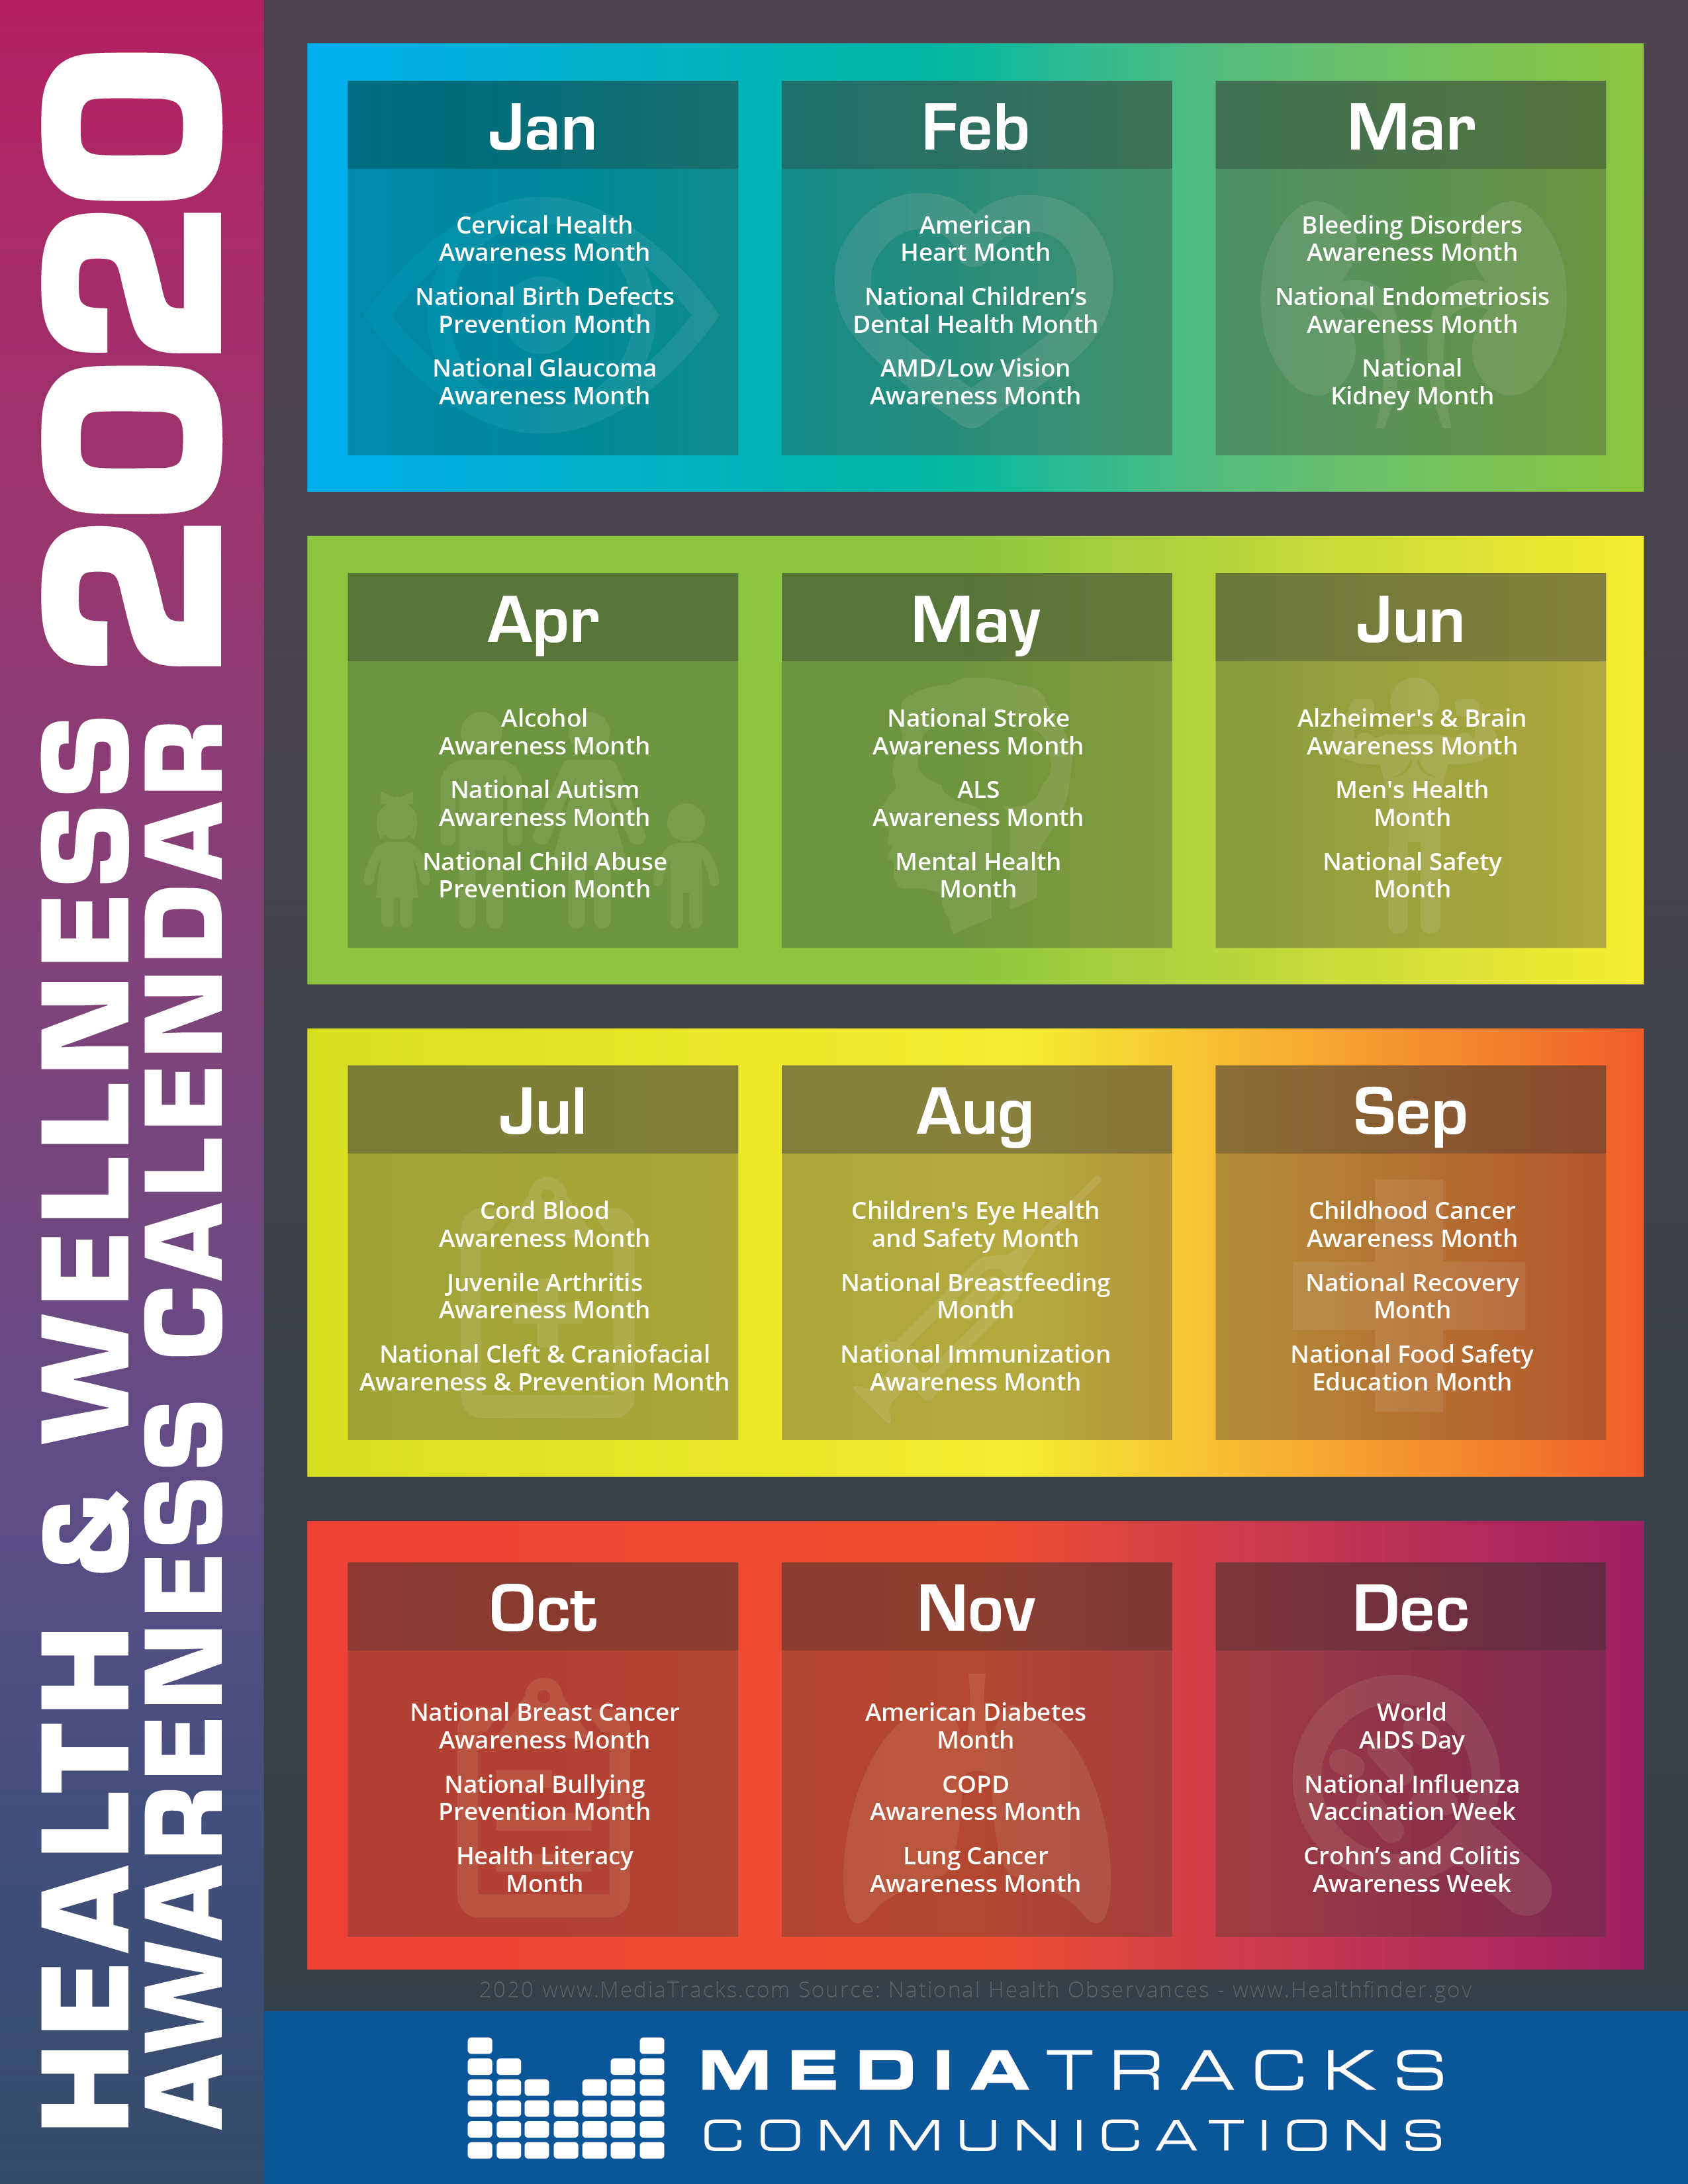 2020 Health & Wellness Awareness Calendar [Infographic regarding National Days June 2020